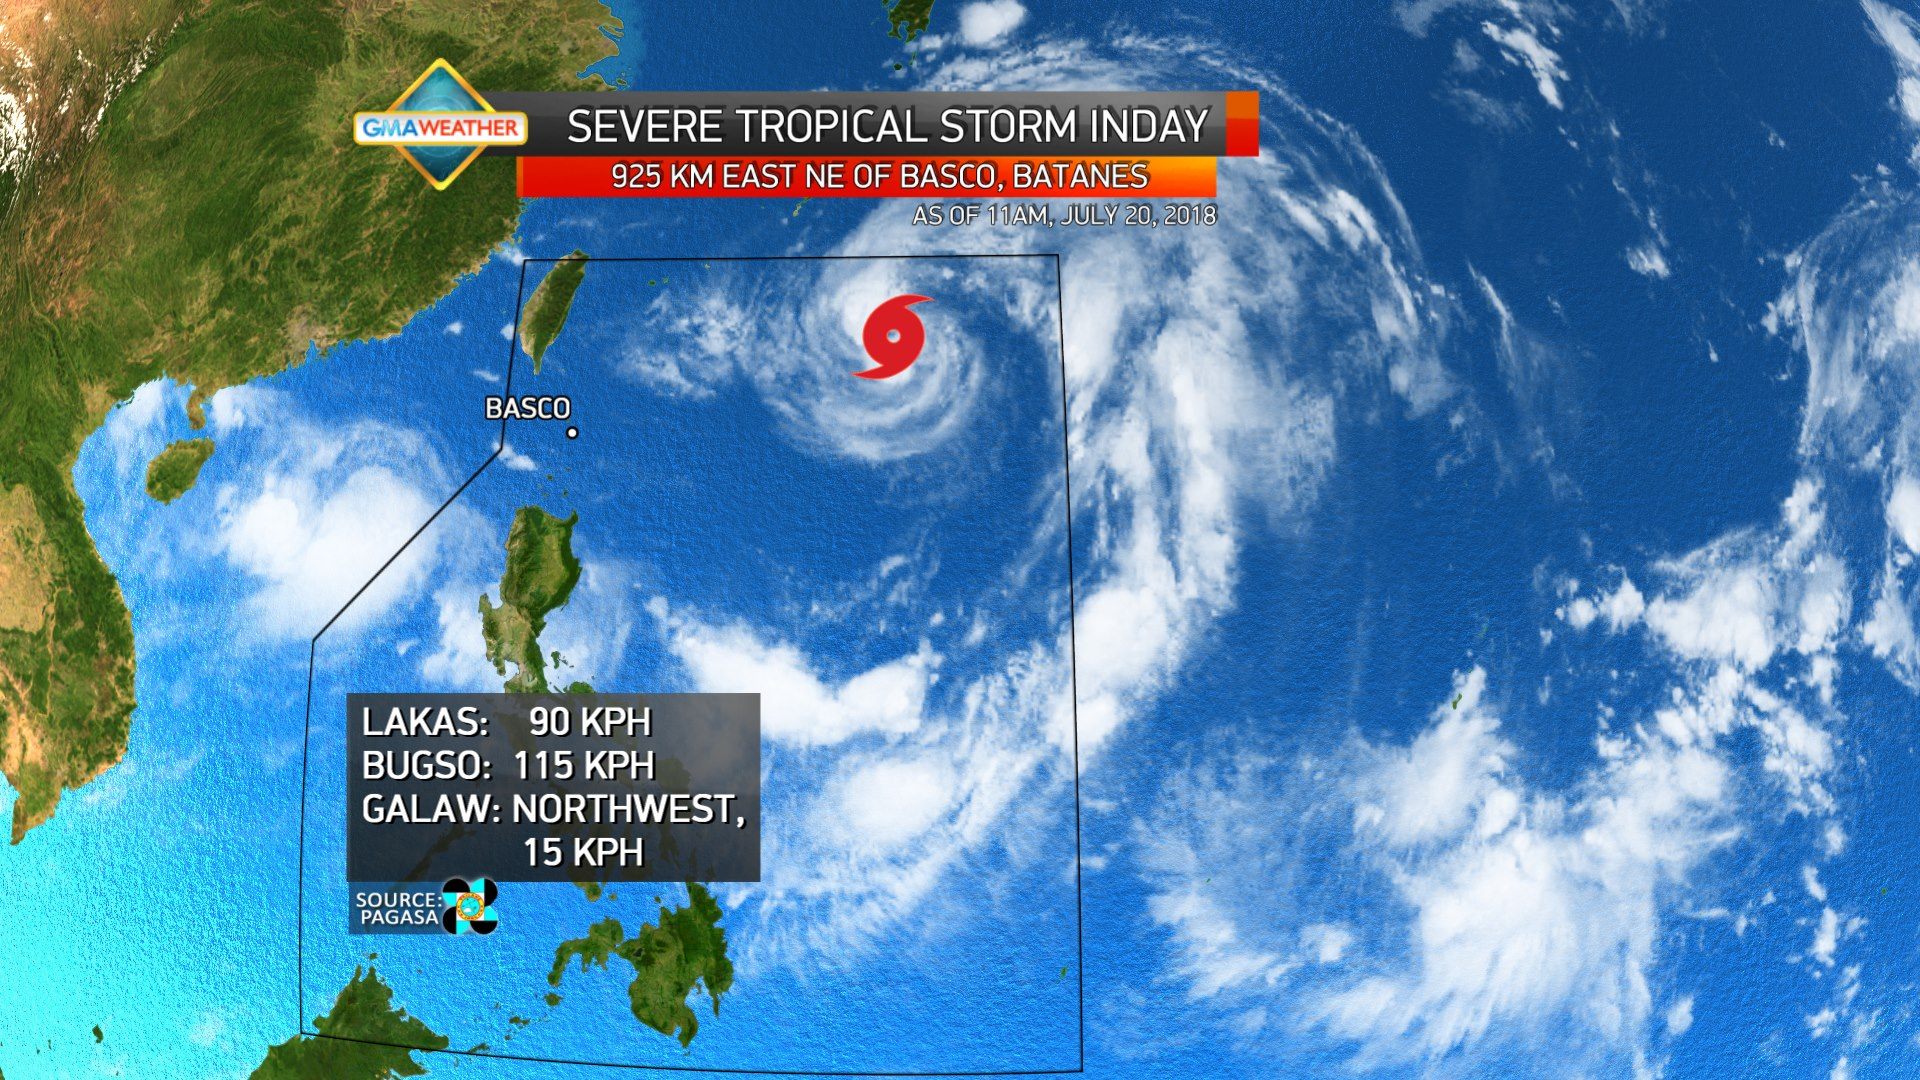 severe tropical storm inday